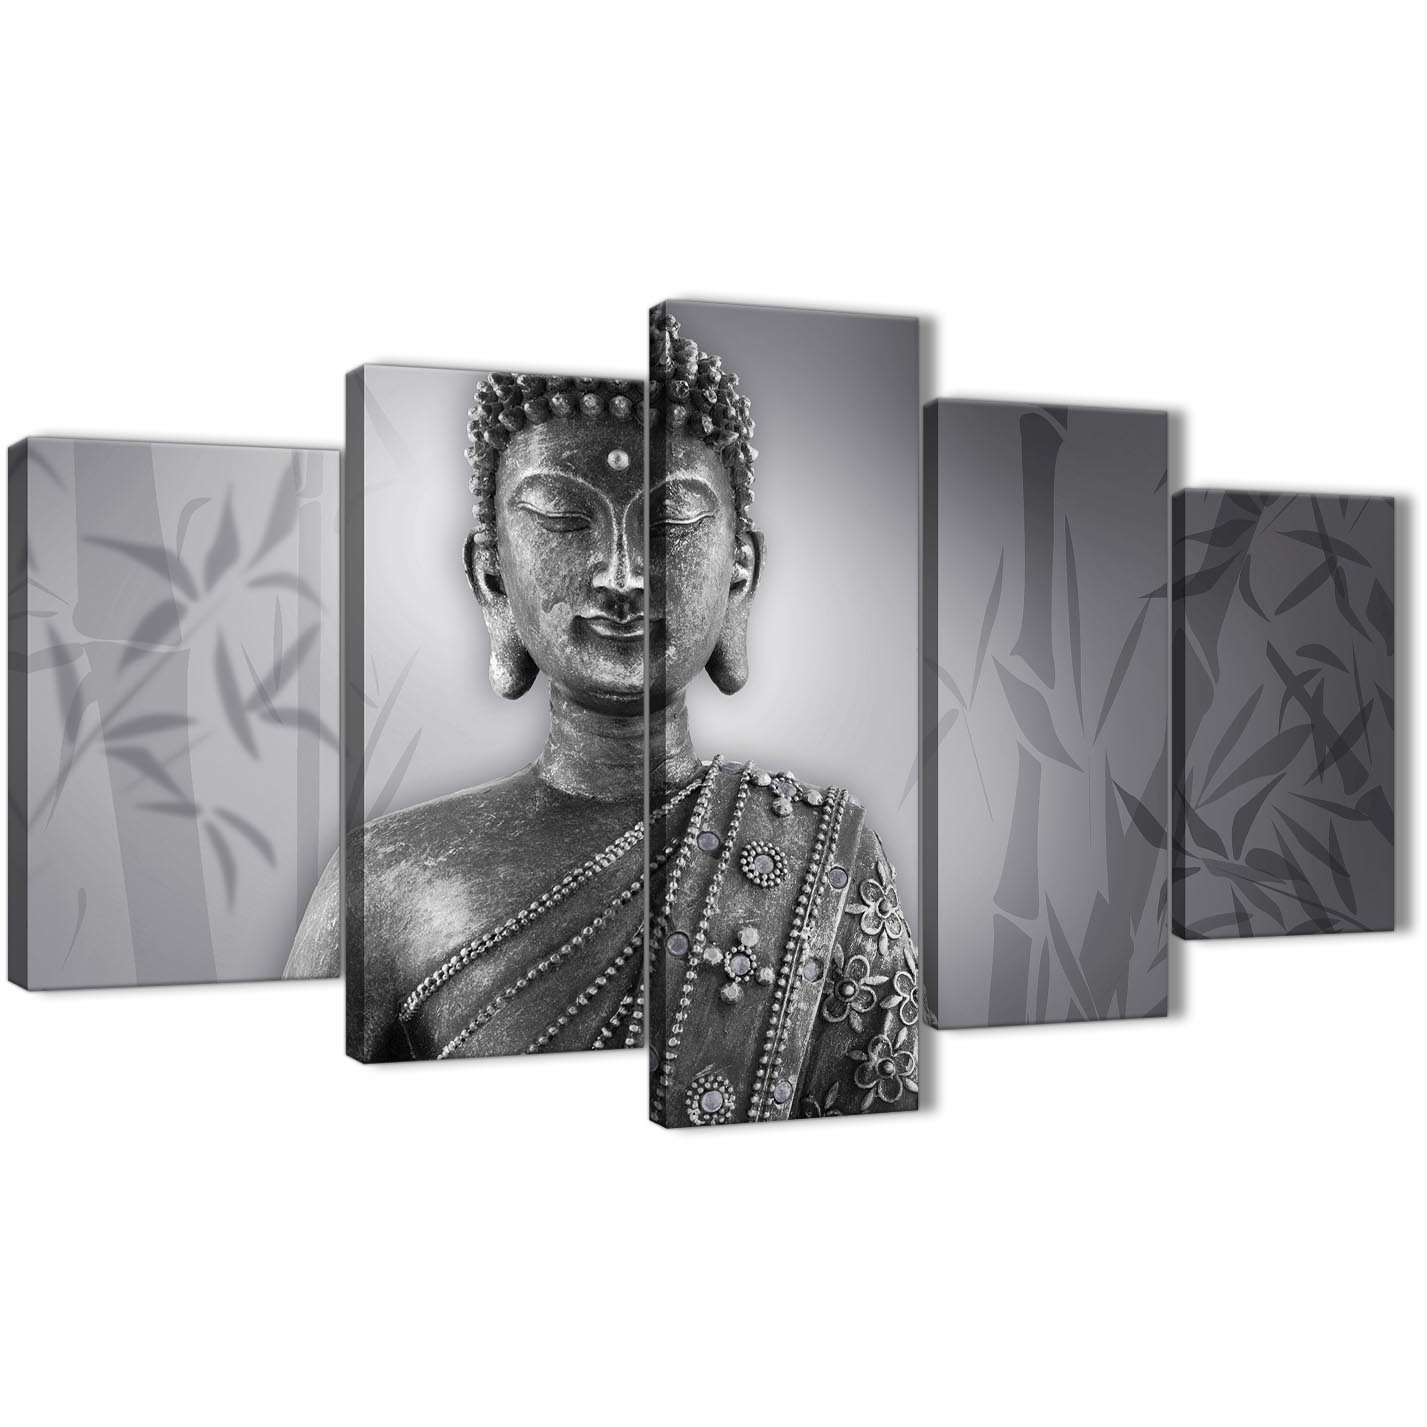 Oversized 5 panel black white buddha office canvas wall art decor 5373 160cm xl display gallery item 1